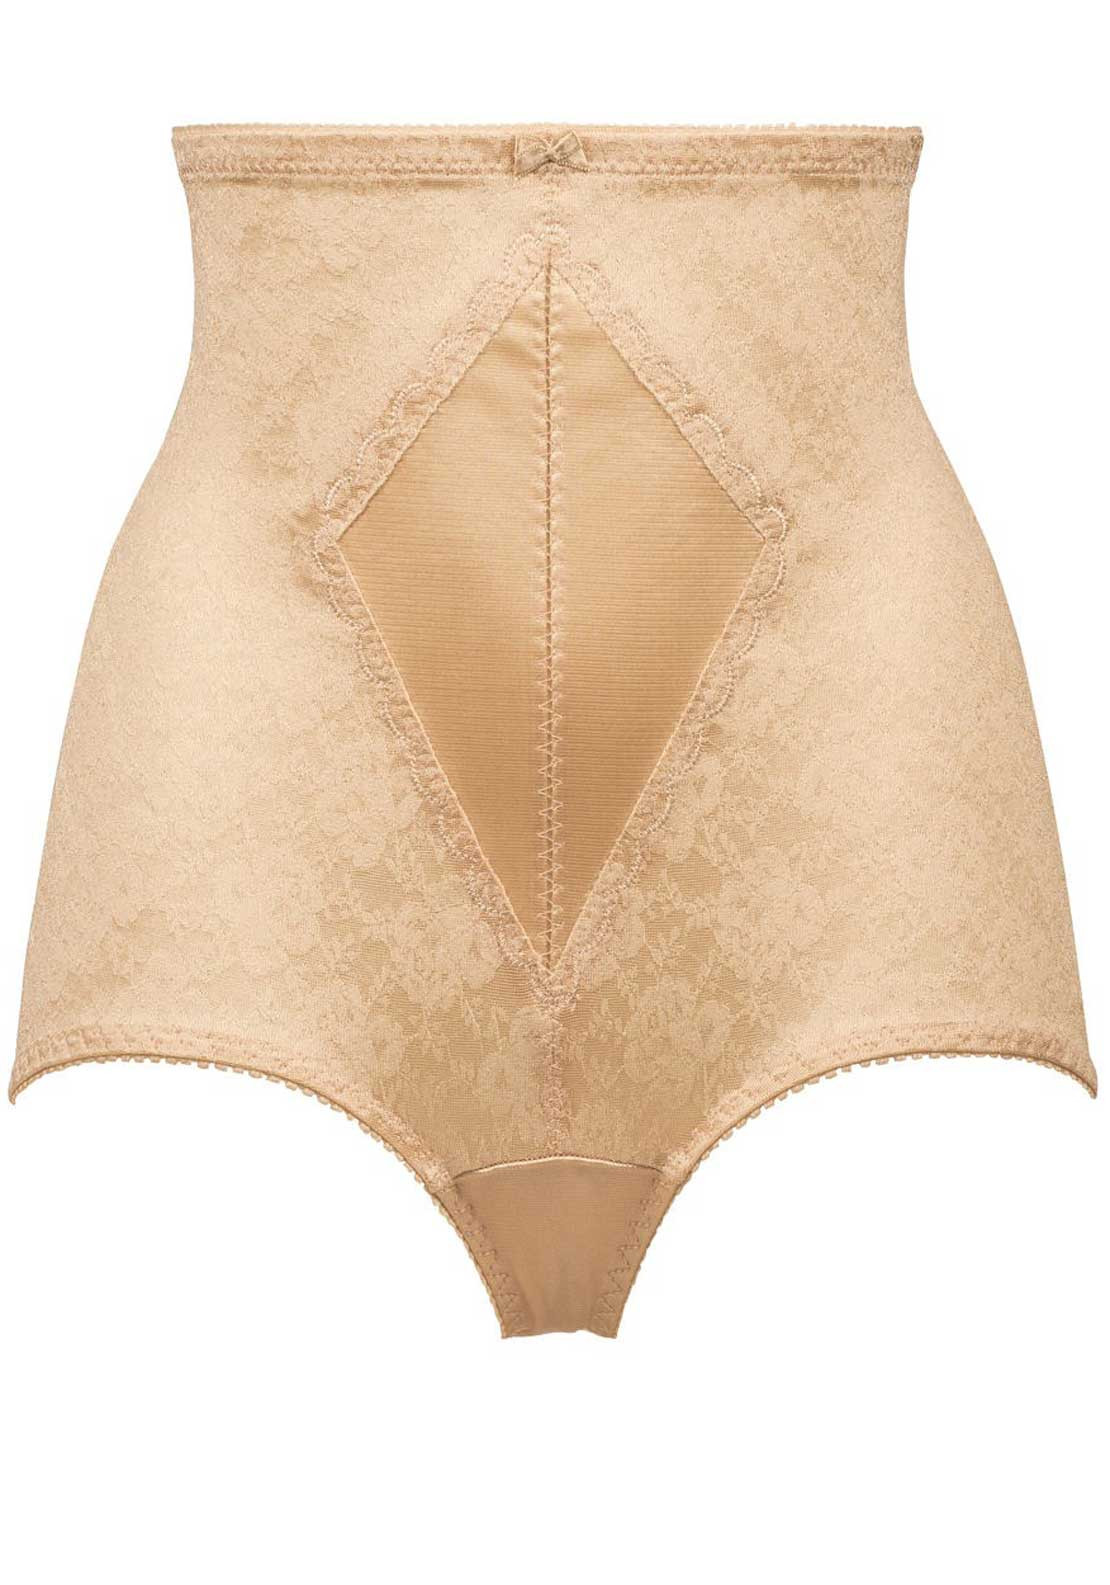 Naturana Firm Control High Waist Girdle Brief, Nude